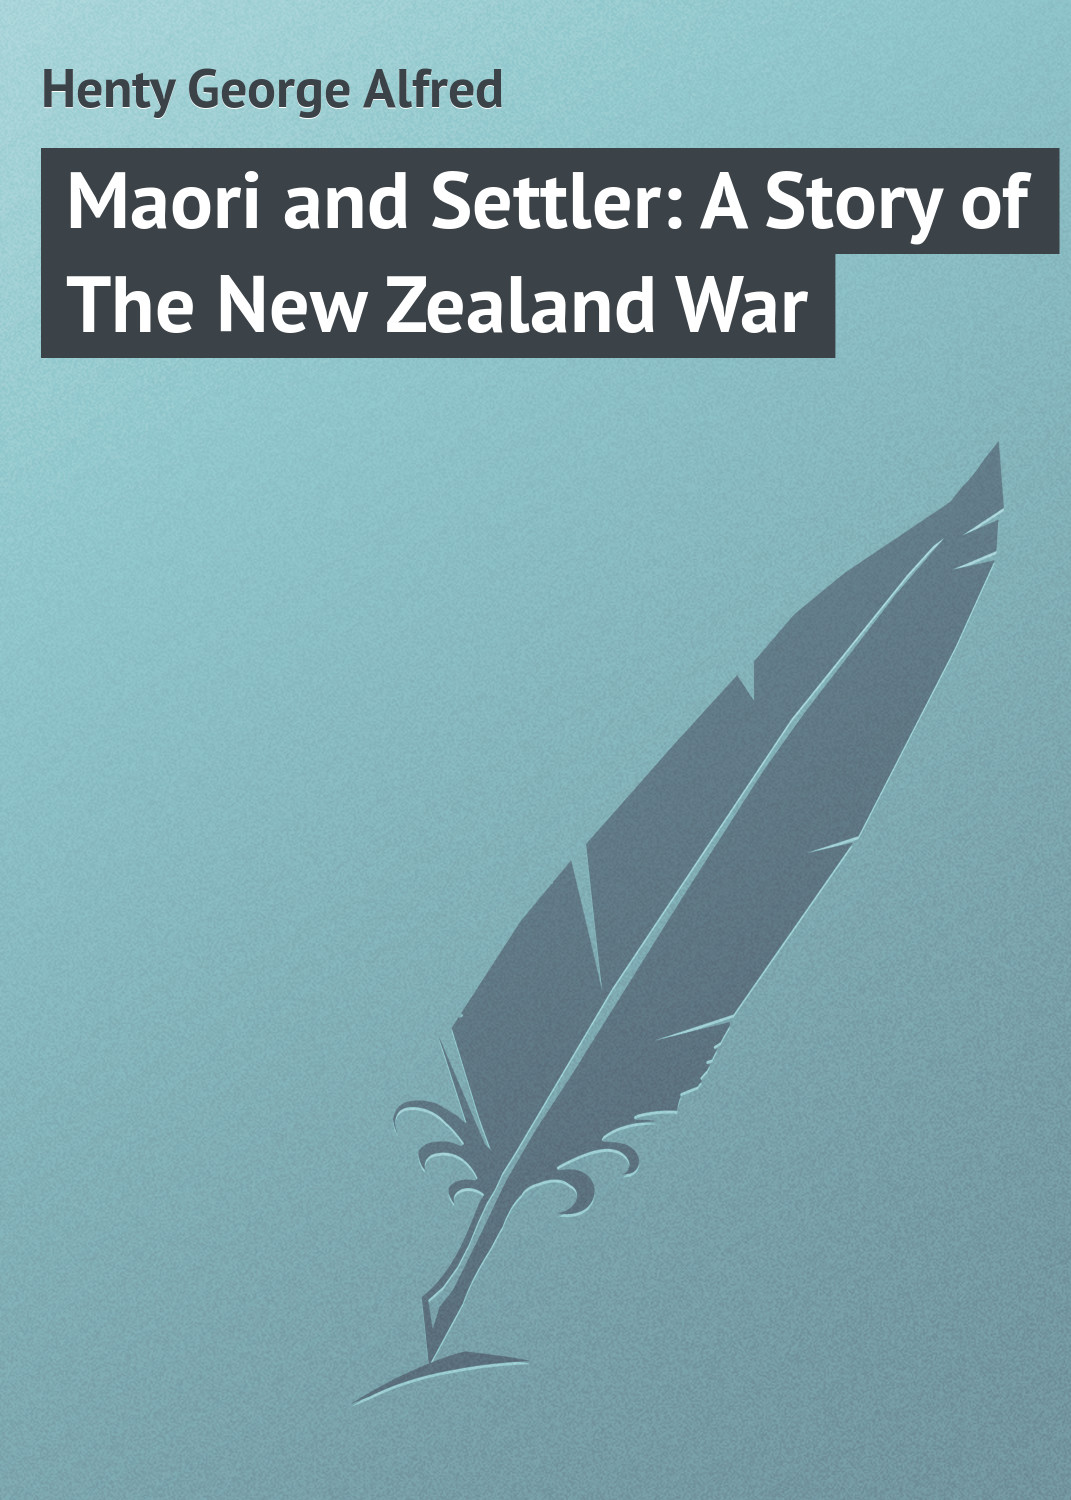 Henty George Alfred Maori and Settler: A Story of The New Zealand War george alfred henty with lee in virginia a story of the american civil war